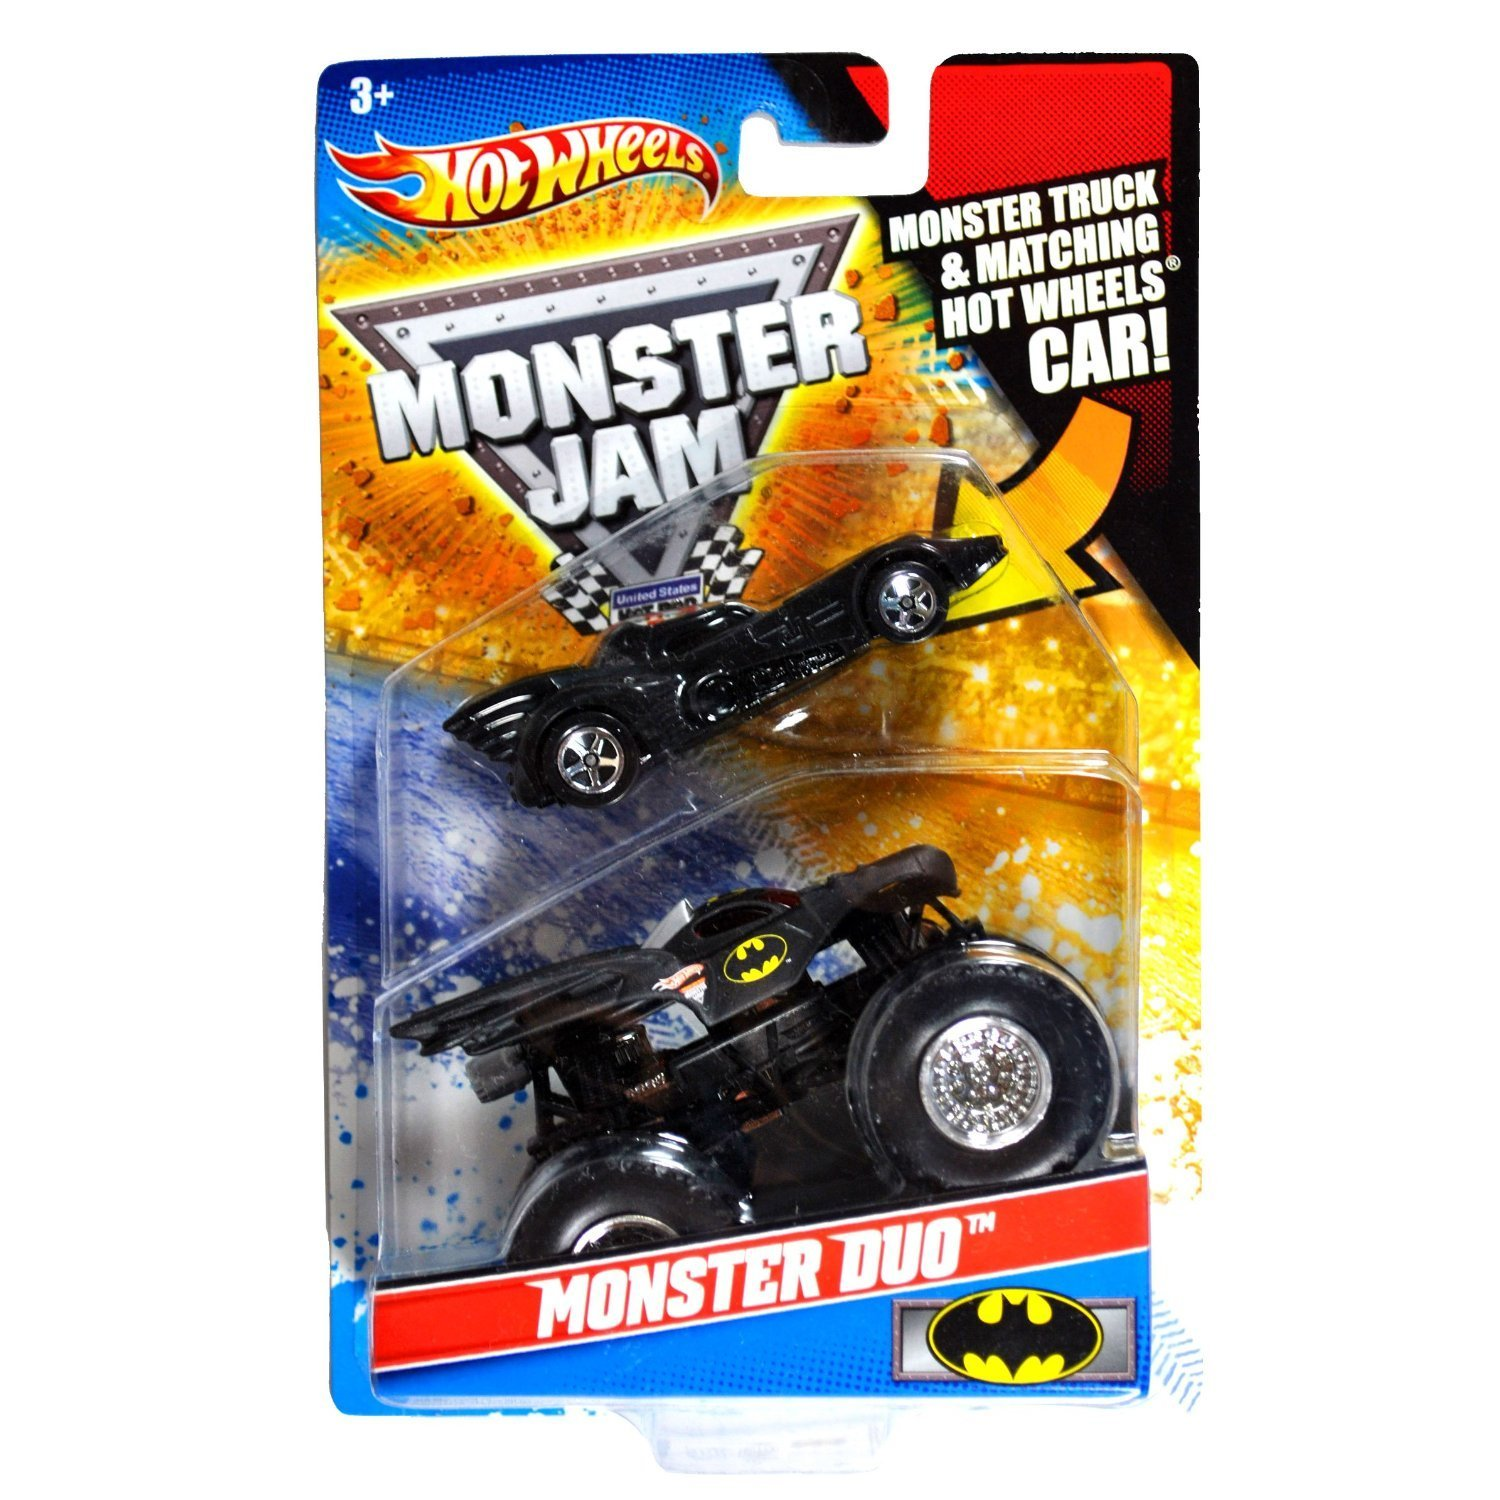 Monster Duo   Batman, 2010 Monster Duo   Batman By Hot Wheels by